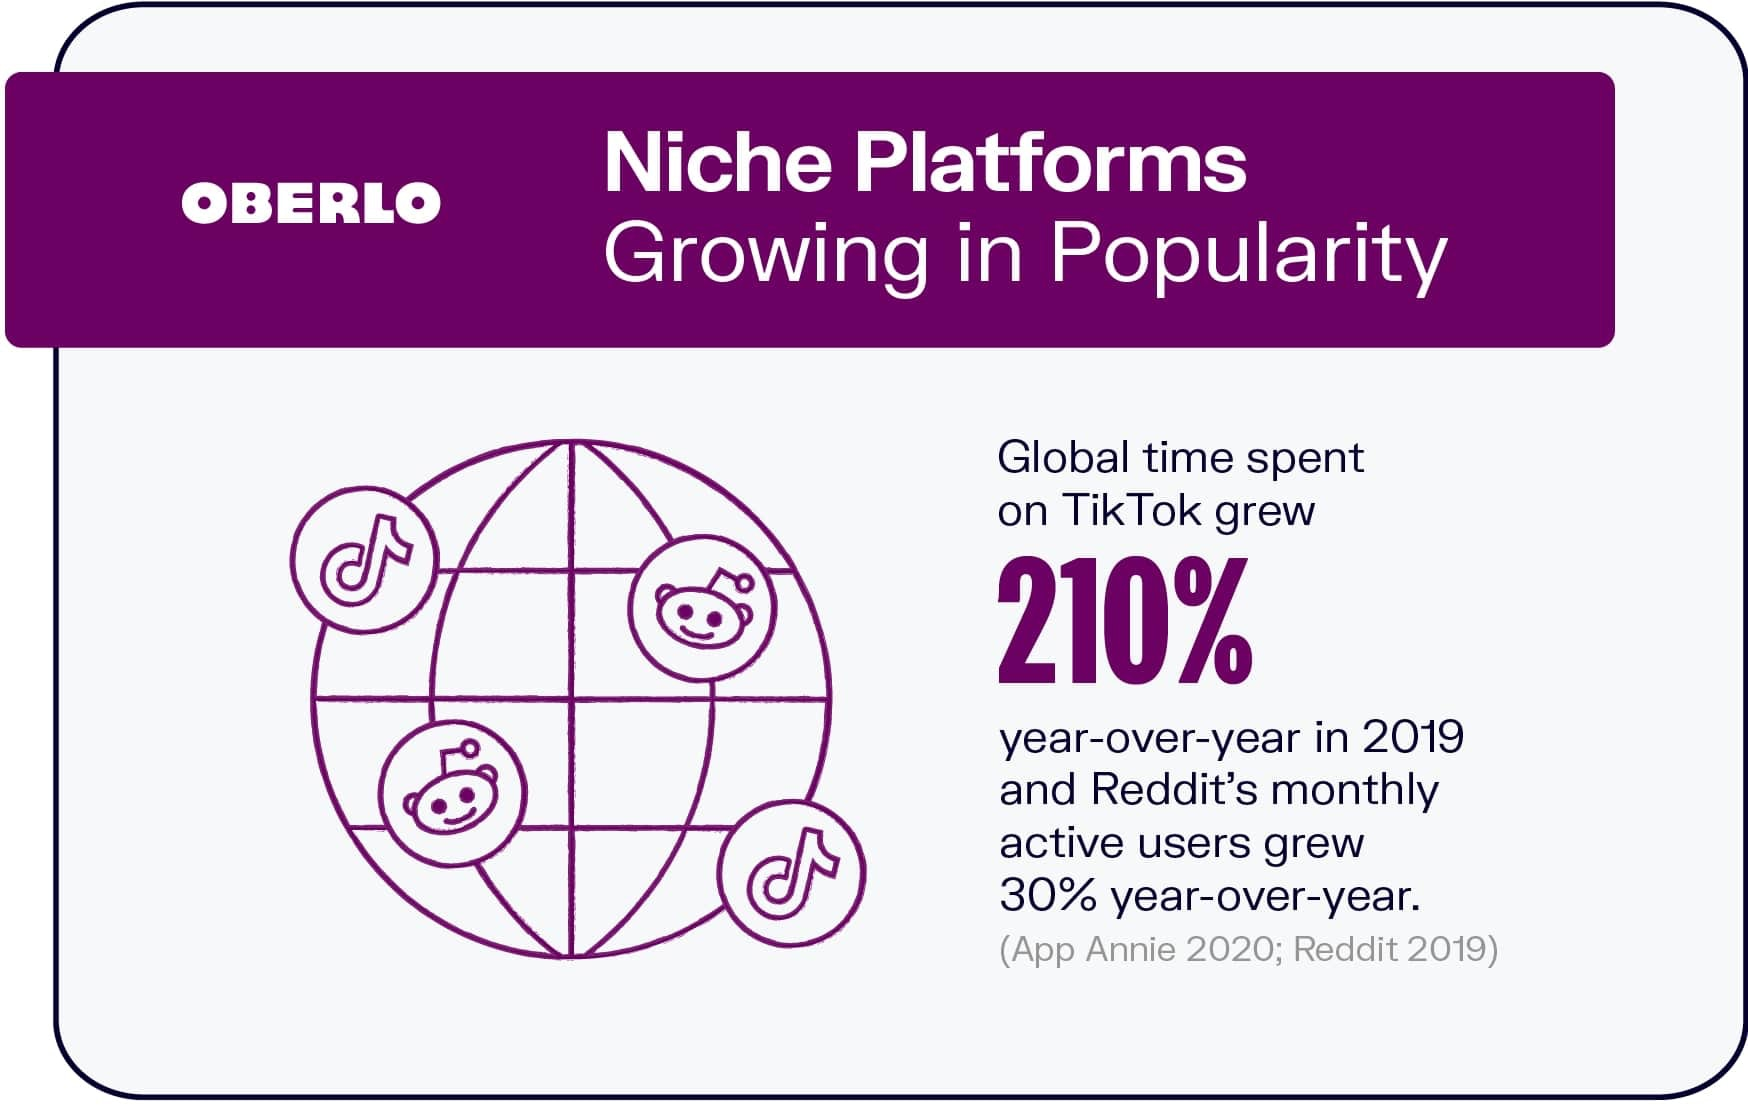 Social Media Trends: Niche Platforms Growing in Popularity